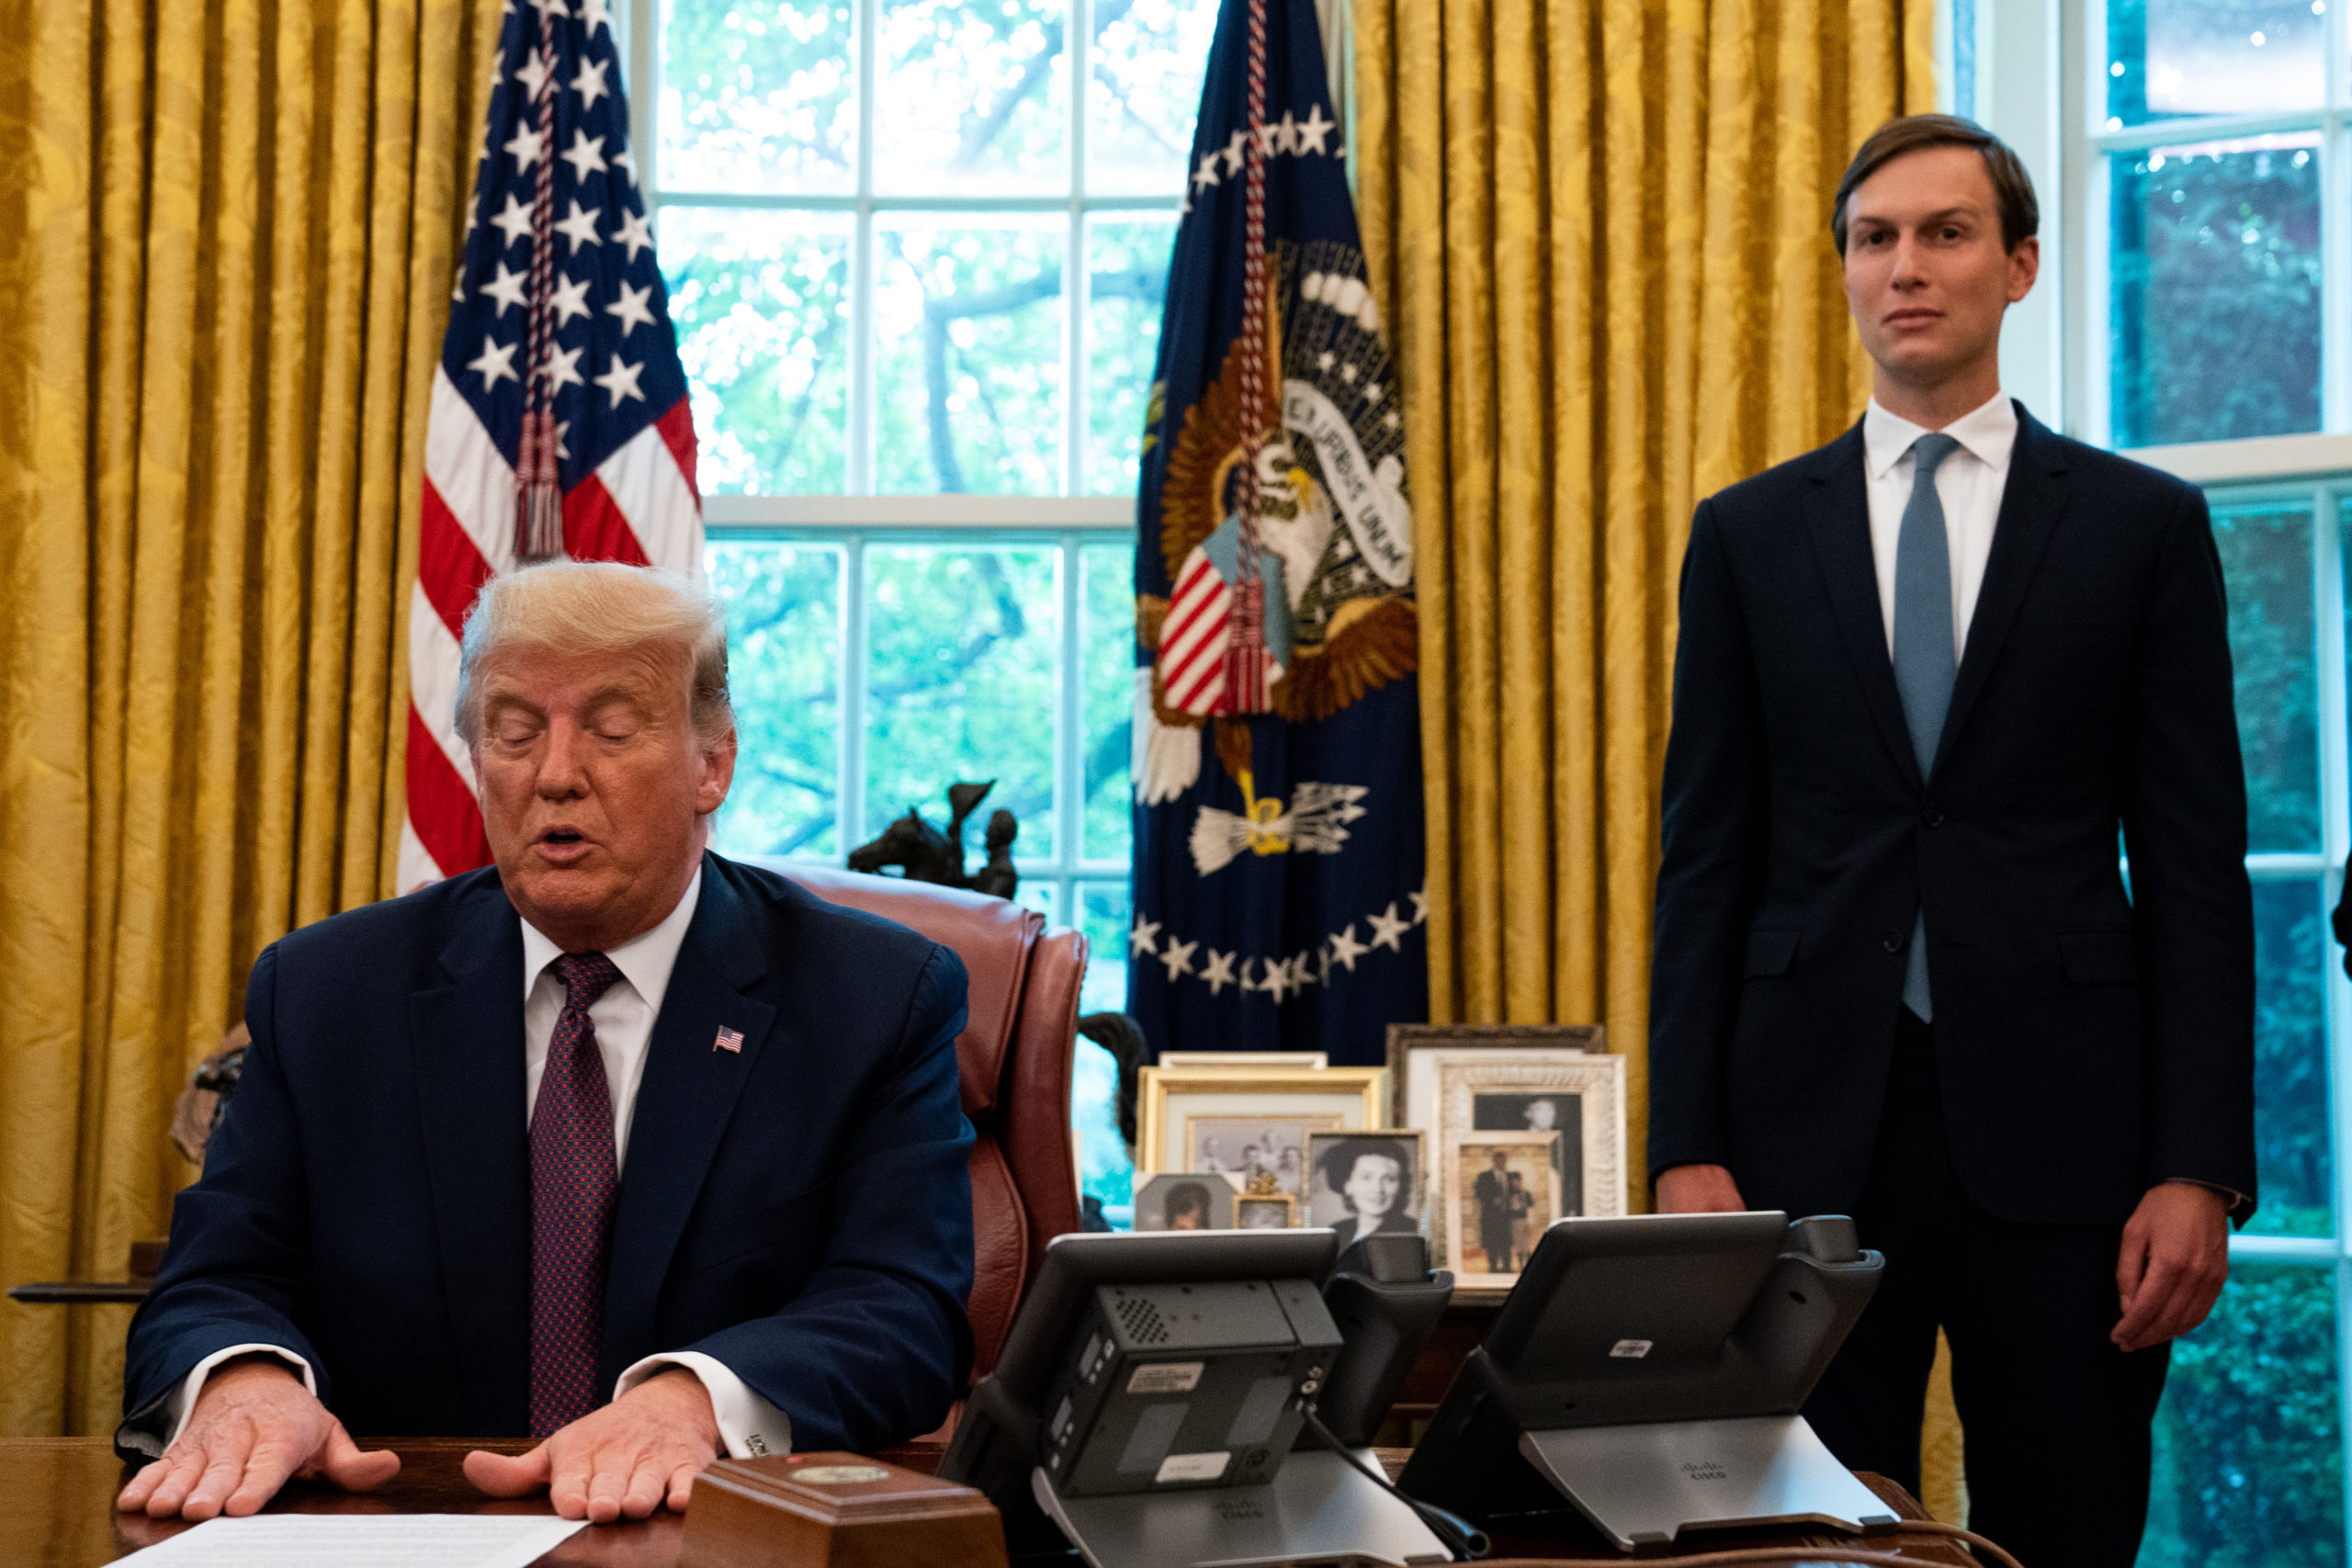 WASHINGTON, DC - SEPTEMBER 11: Advisor Jared Kushner (R) looks on as U.S. President Donald Trump speaks in the Oval Office to announce that Bahrain will establish diplomatic relations with Israel, at the White House in Washington, DC on September 11, 2020. The announcement follows one last month by Israel and the United Arab Emirates that they would seek to normalize relations with each other. (Photo by Anna Moneymaker-Pool/Getty Images)